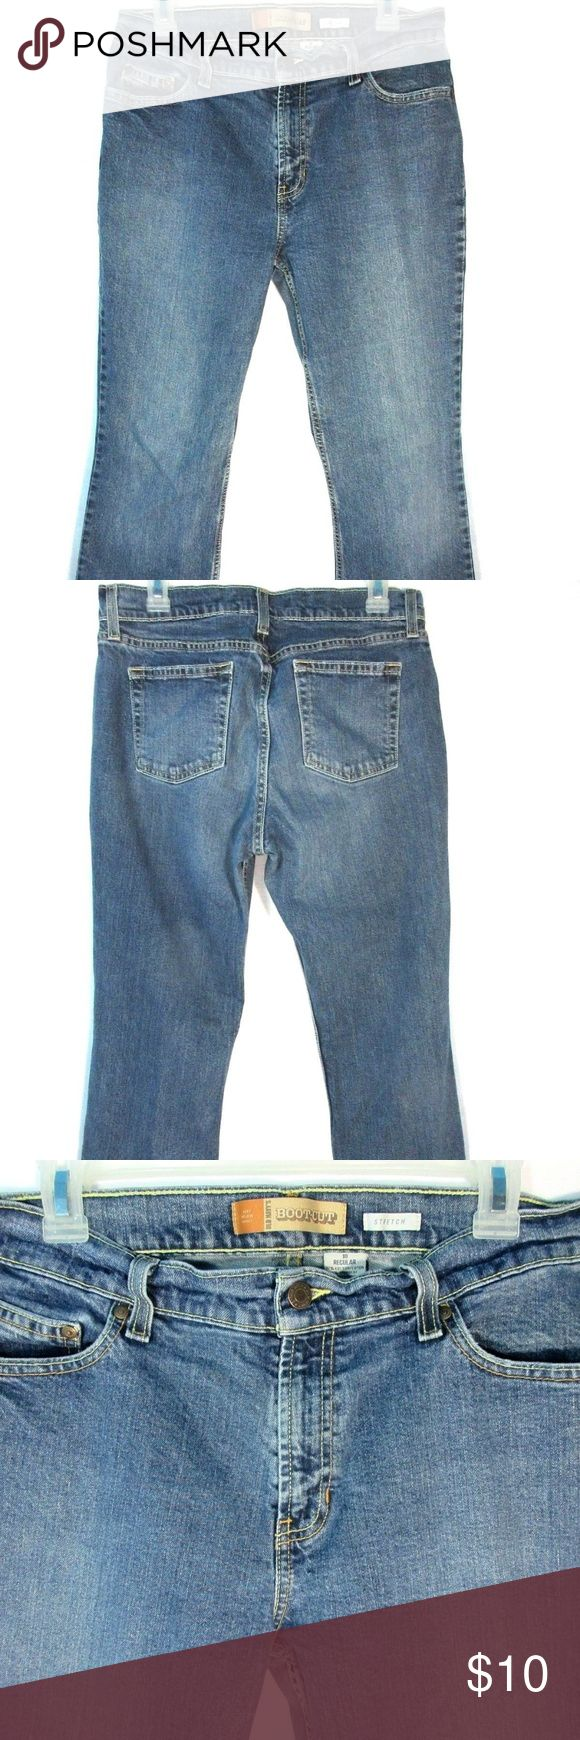 "Old Navy Women's Boot Cut Jeans Size 10 Regular Old Navy Women's Boot Cut Jeans Size 10 Regular Denim Blue Pants.  Tag Size: 10 Regular  measurements taken  Waist 31.5"" Inseam 30.75"" Outseam 41"" Leg Opening 18"" Front Rise 10"" Back Rise 13.5"" Hips 38"" Old Navy Jeans Boot Cut"